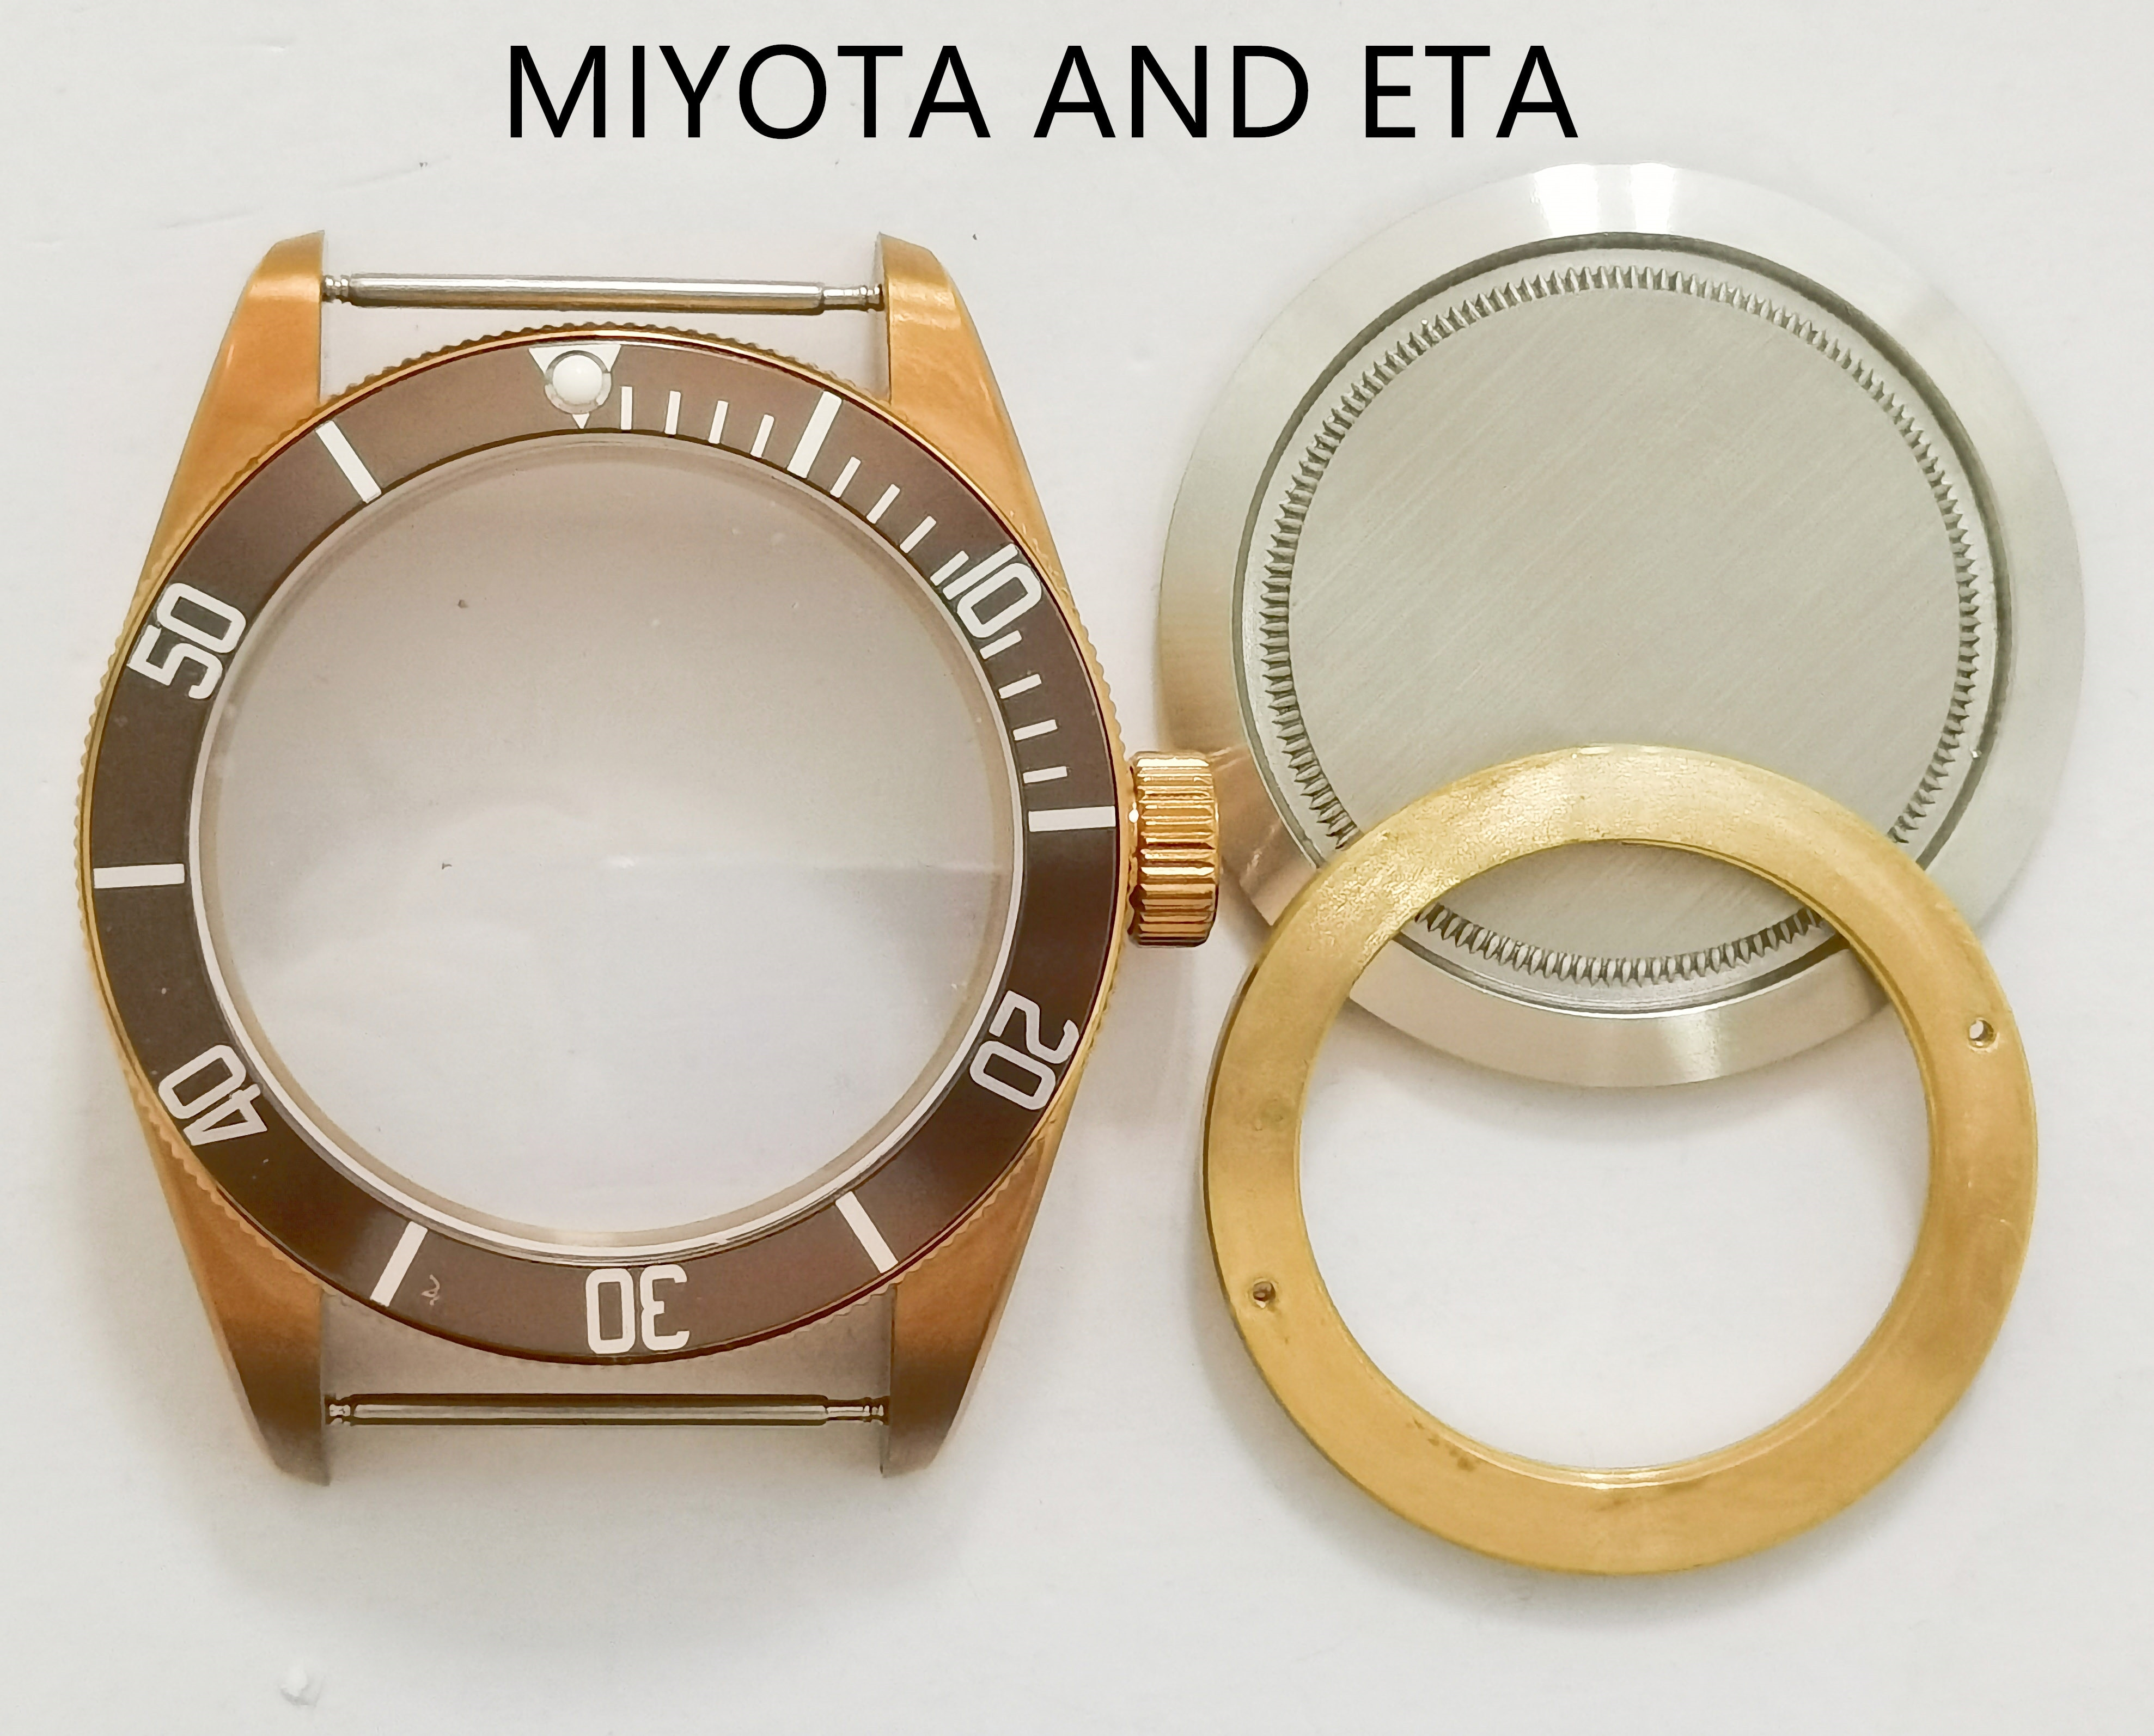 40MM New Watch Part 316 Stainless Steel Case Add Dial And Hands Fit  ETA 2836/2824 ST2130 Miyota 8215 NH35 Automatic Movement enlarge